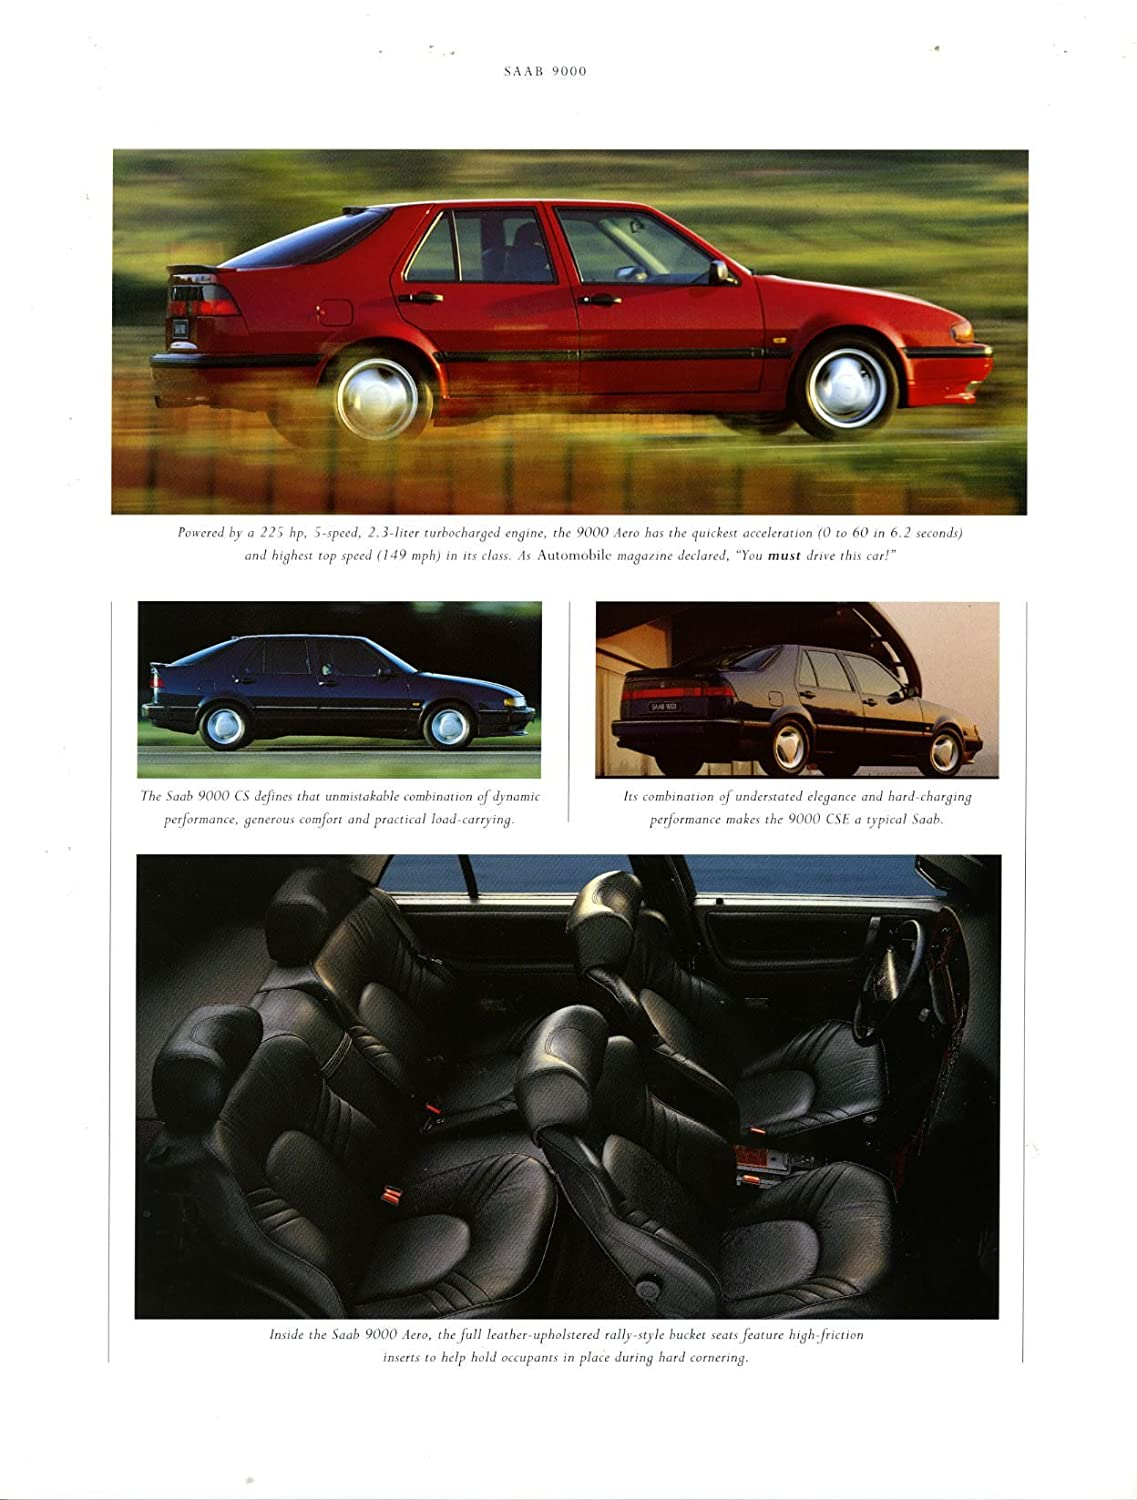 Amazon.com: 1996 Saab 900 9000 Series Brochure: Entertainment Collectibles